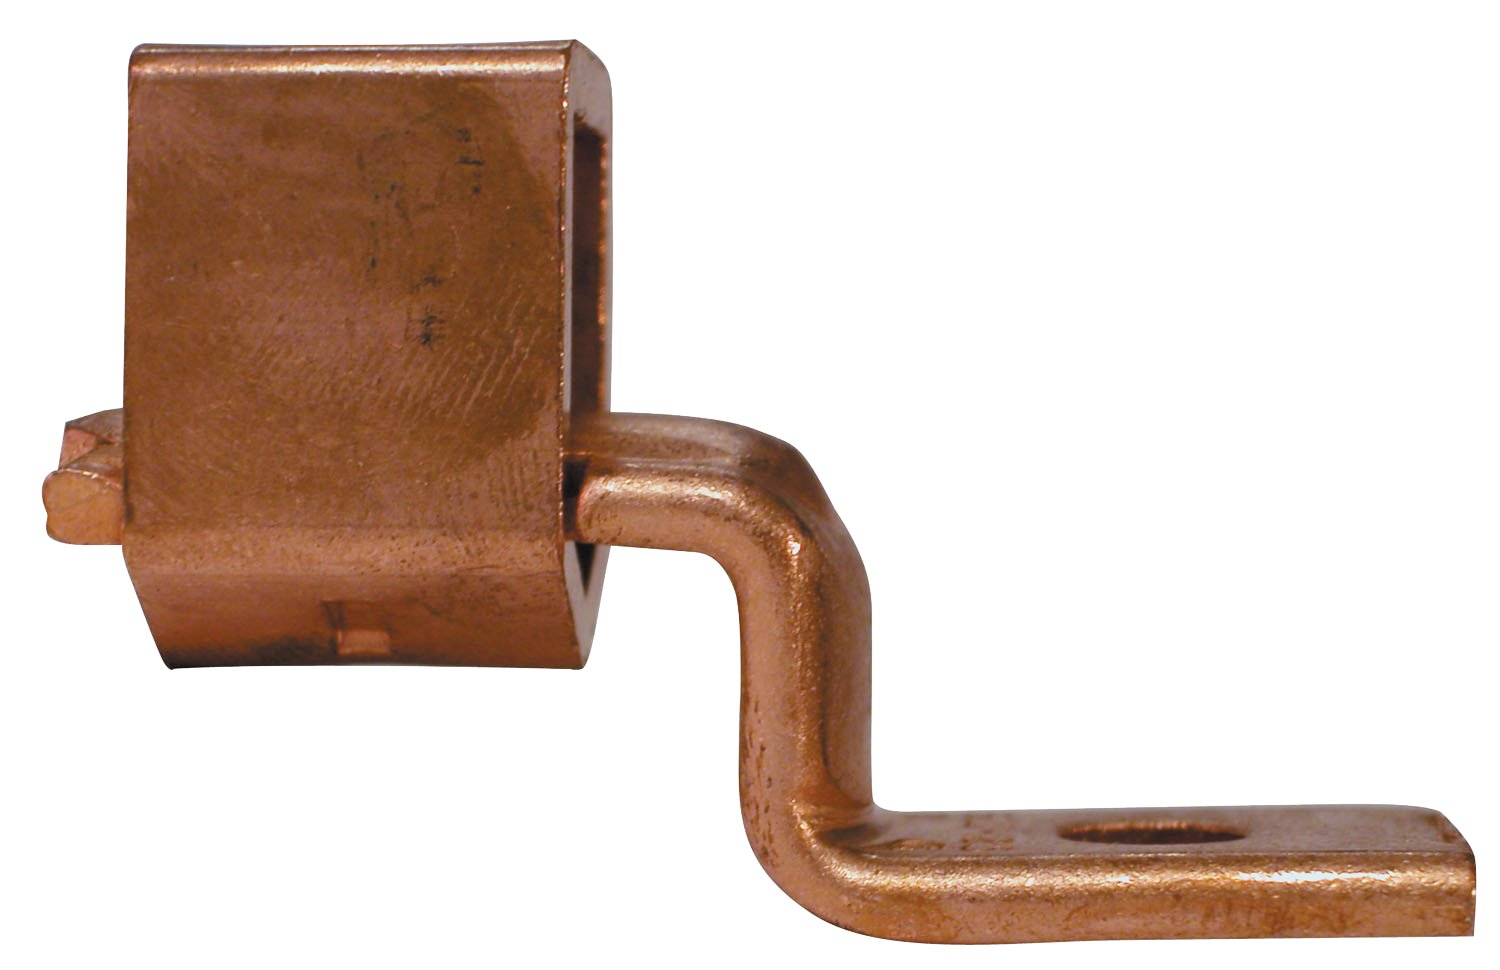 Gardner Bender GSLU-70 Copper Mechanical Cable Lugs, 8-2 AWG Solid ...